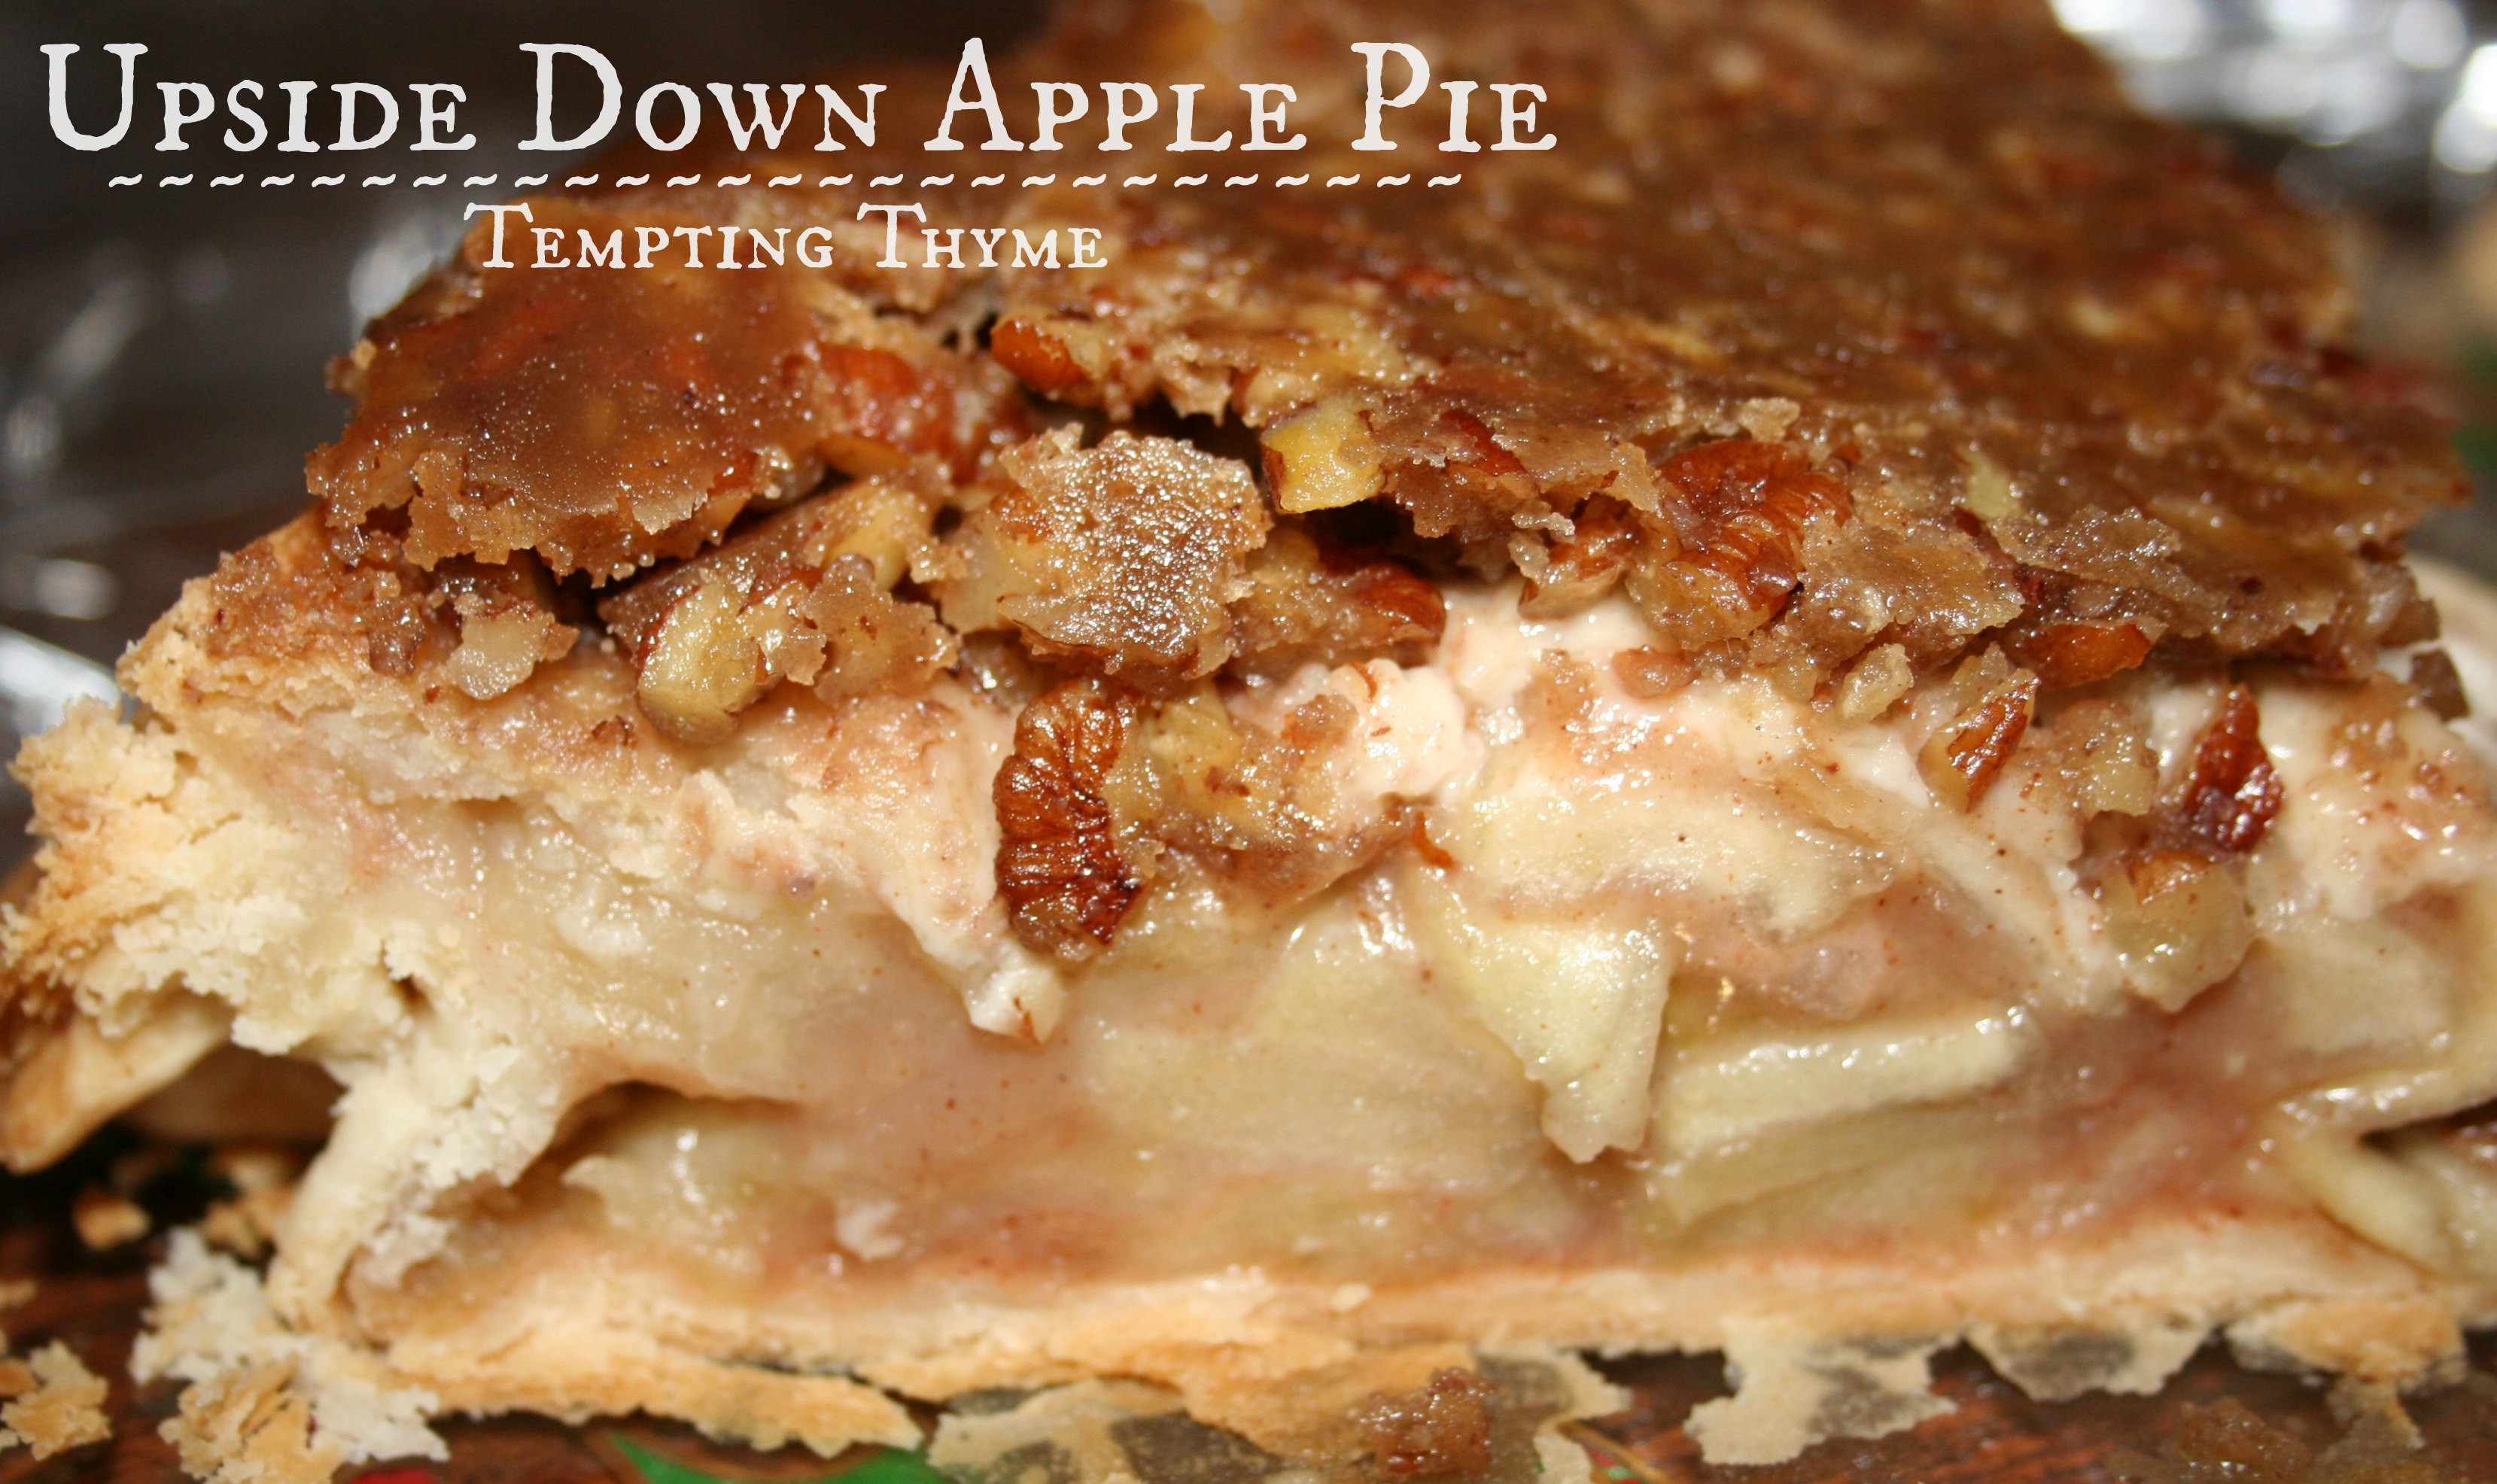 Upside Down Apple Pie  Upside Down Apple Pie Mr Food and another Birthday